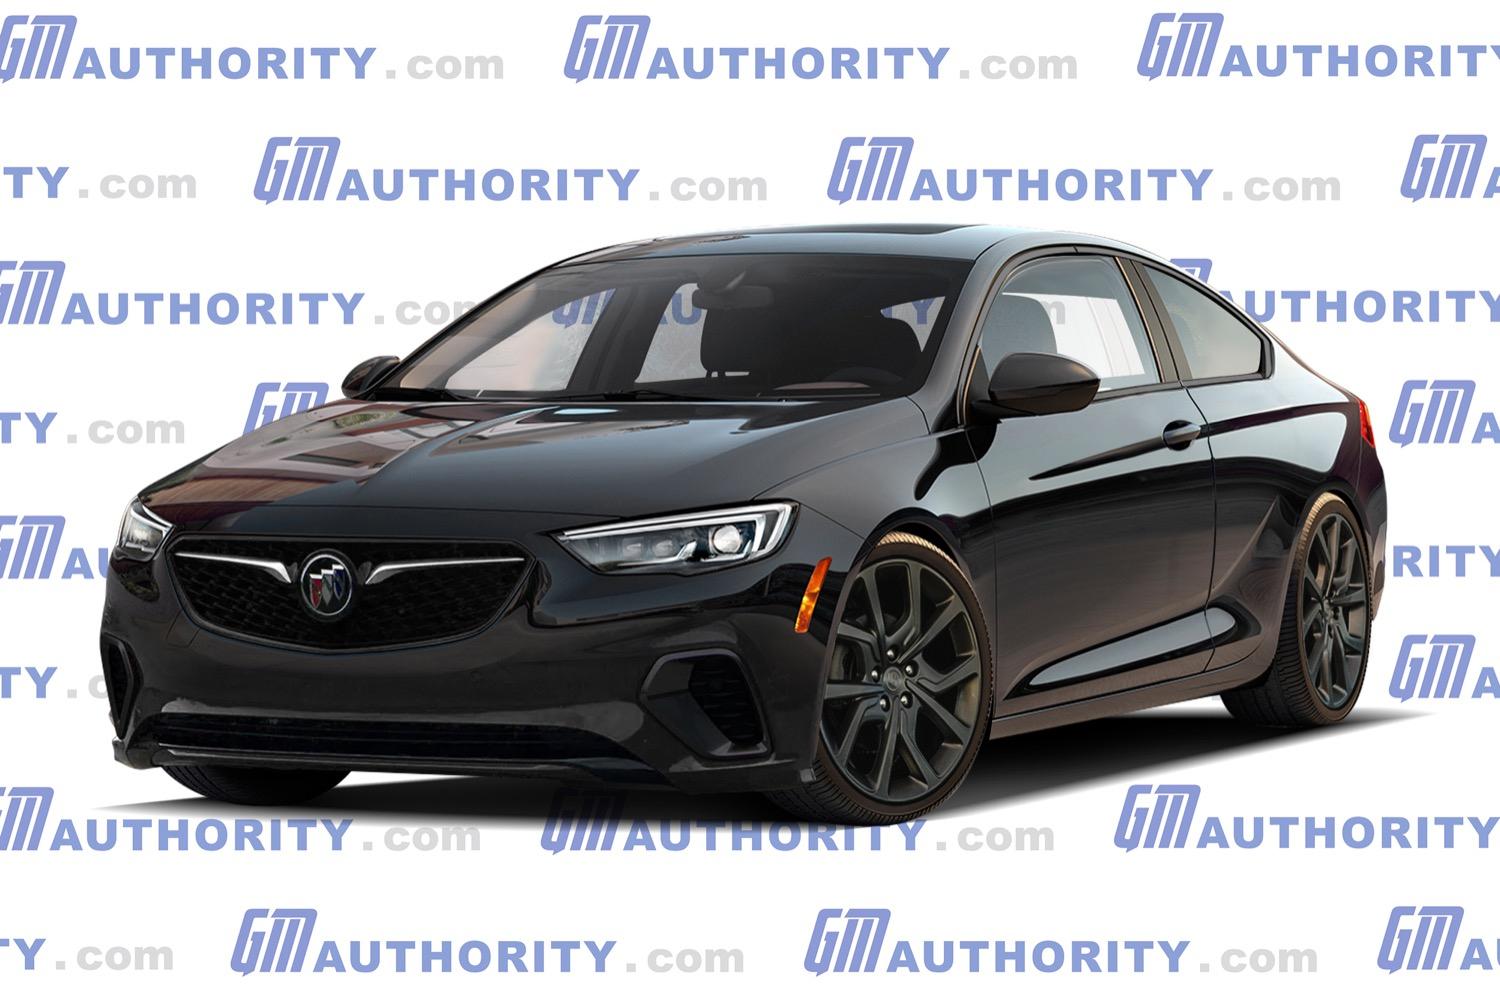 Modern Buick Regal Gnx Rendered | Gm Authority Will There Be A New 2022 Buick Regal